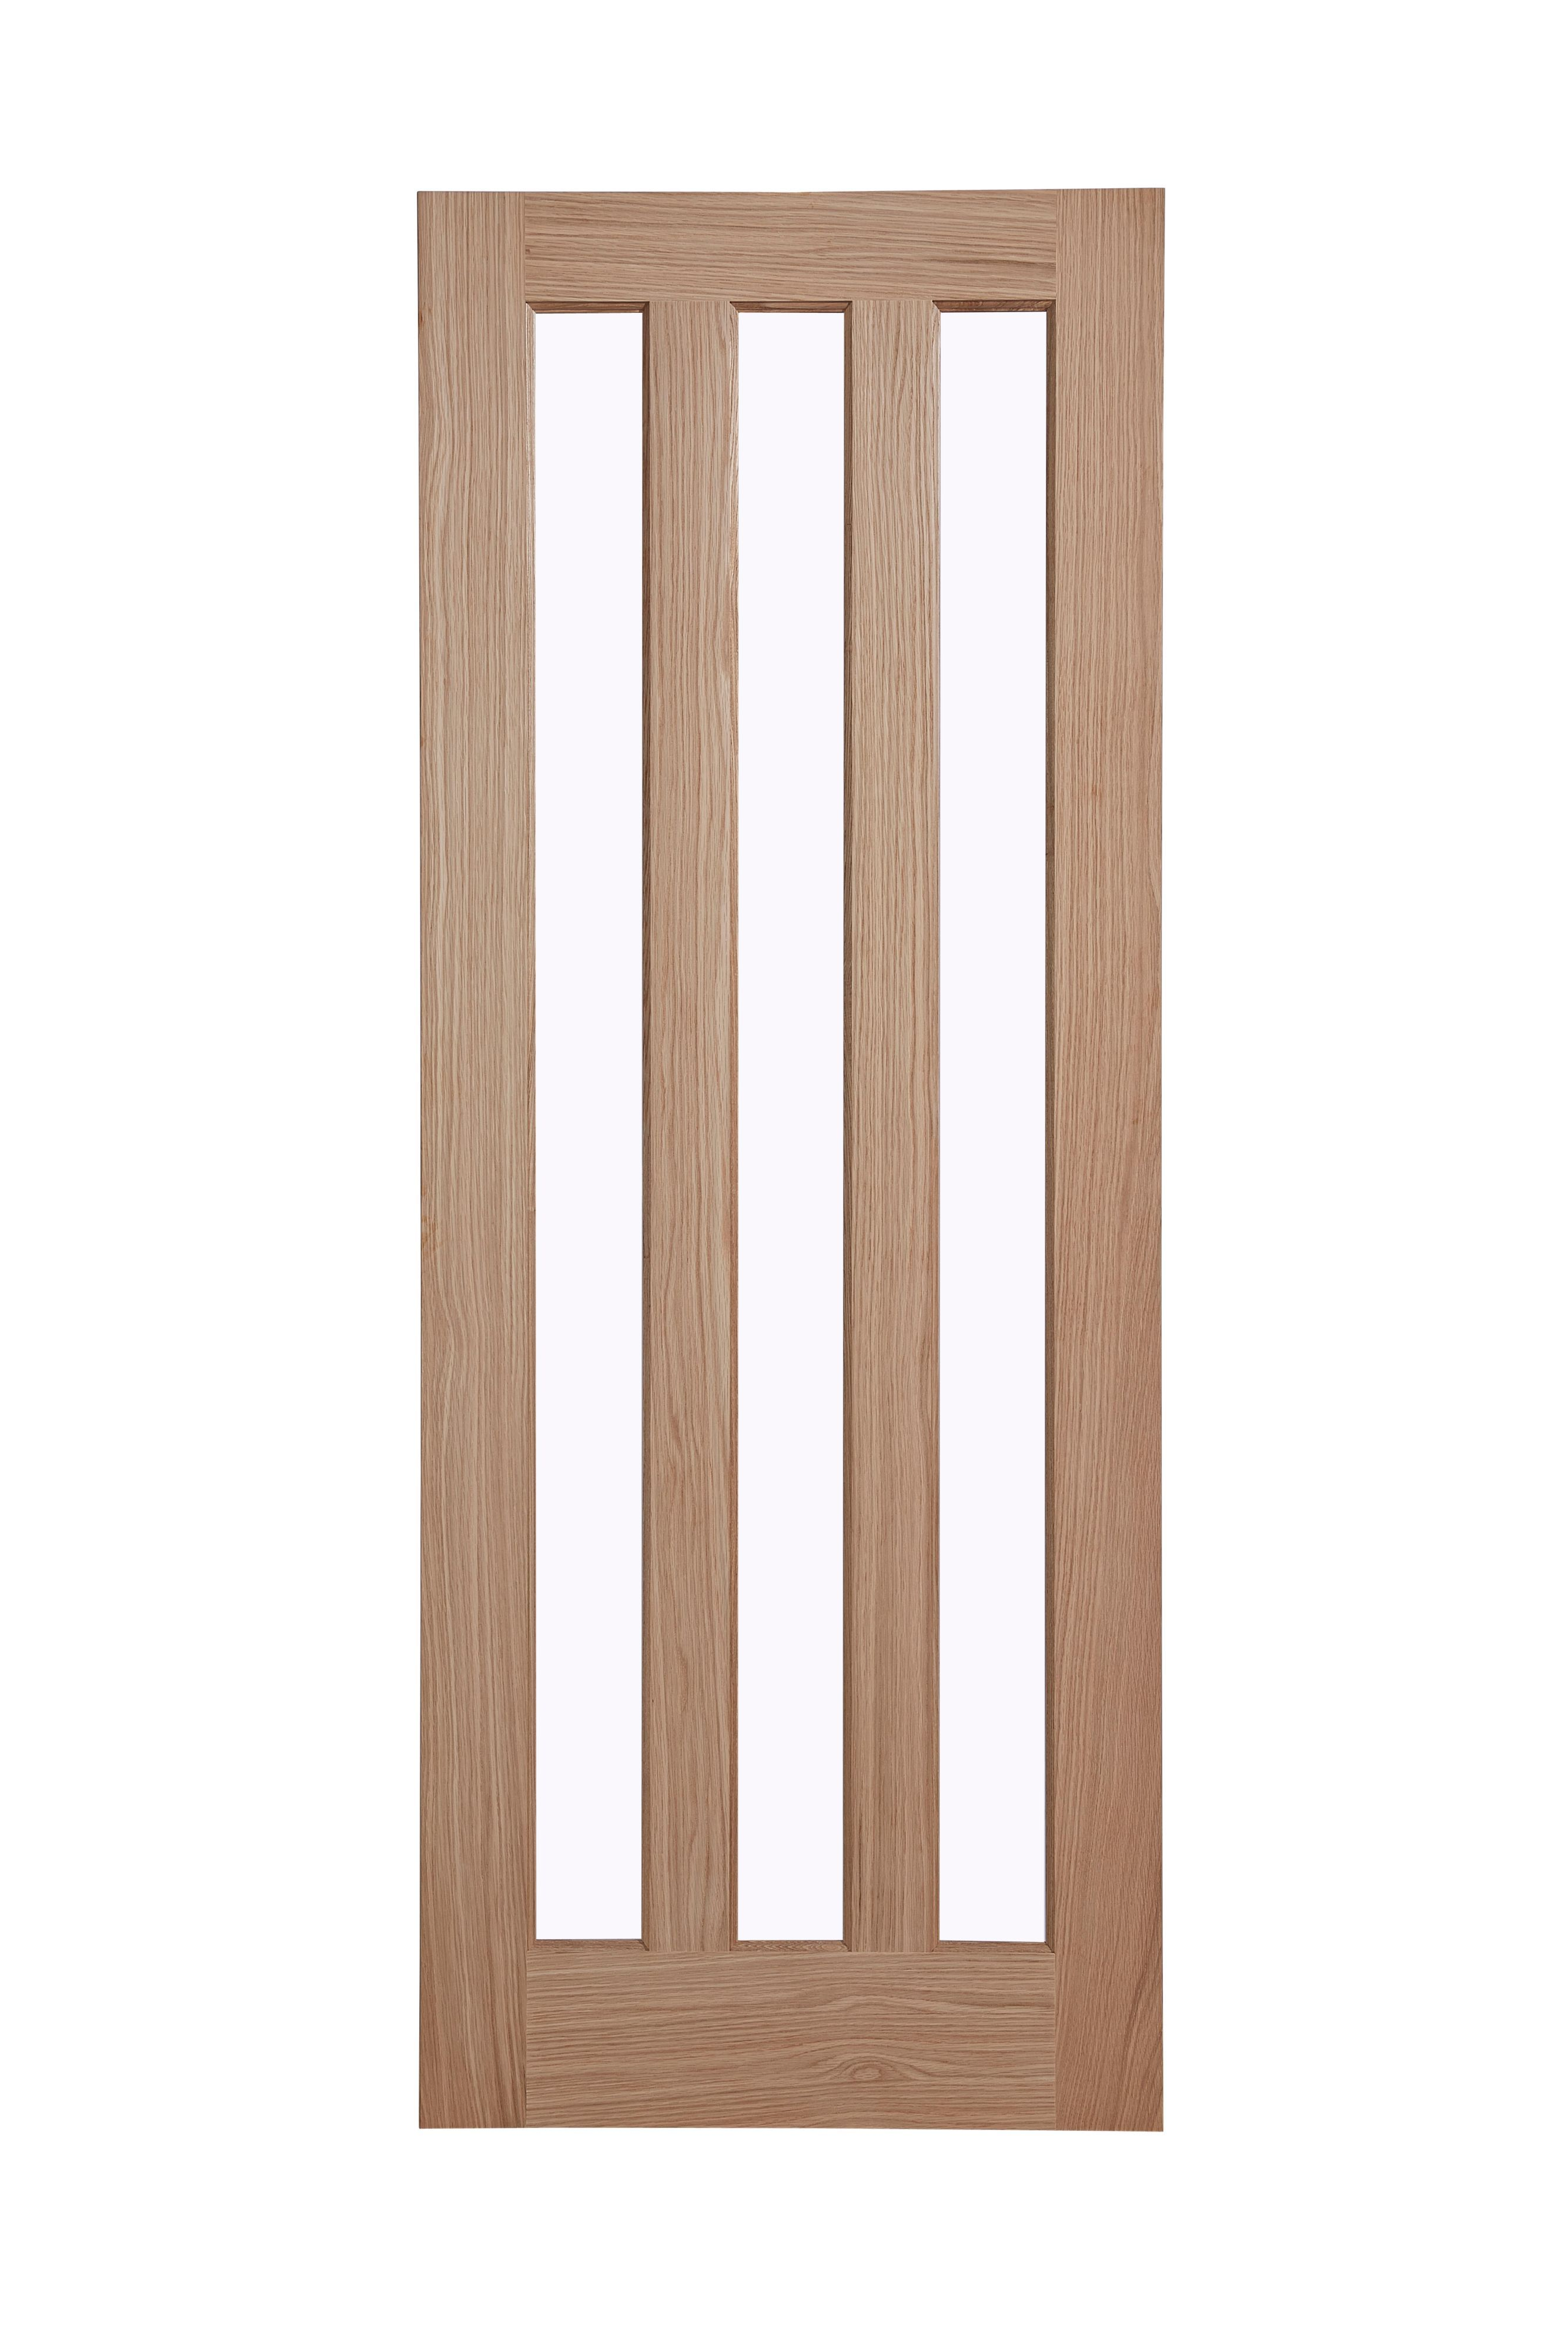 Vertical 3 Panel Oak Veneer Glazed Internal Standard Door (H)1981mm (W)762mm